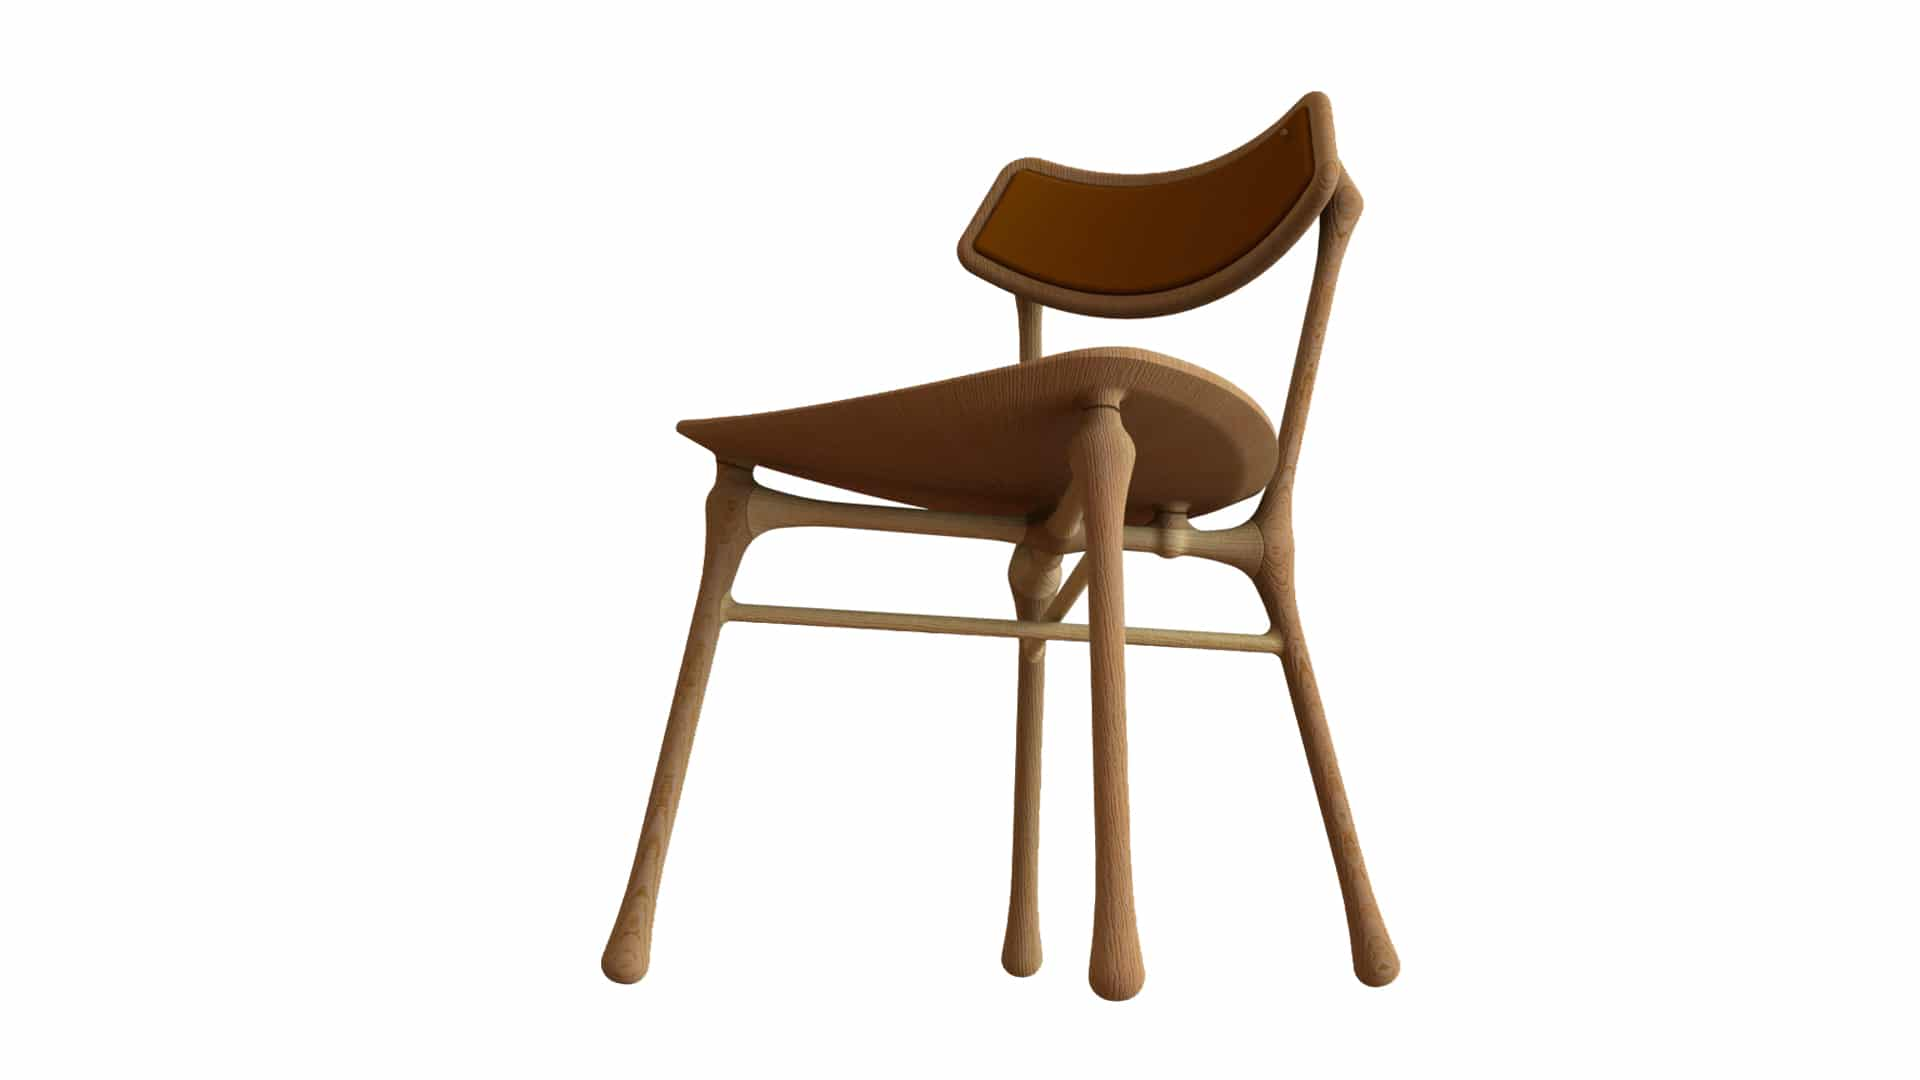 Design Chair Tata Designer Estudiobola